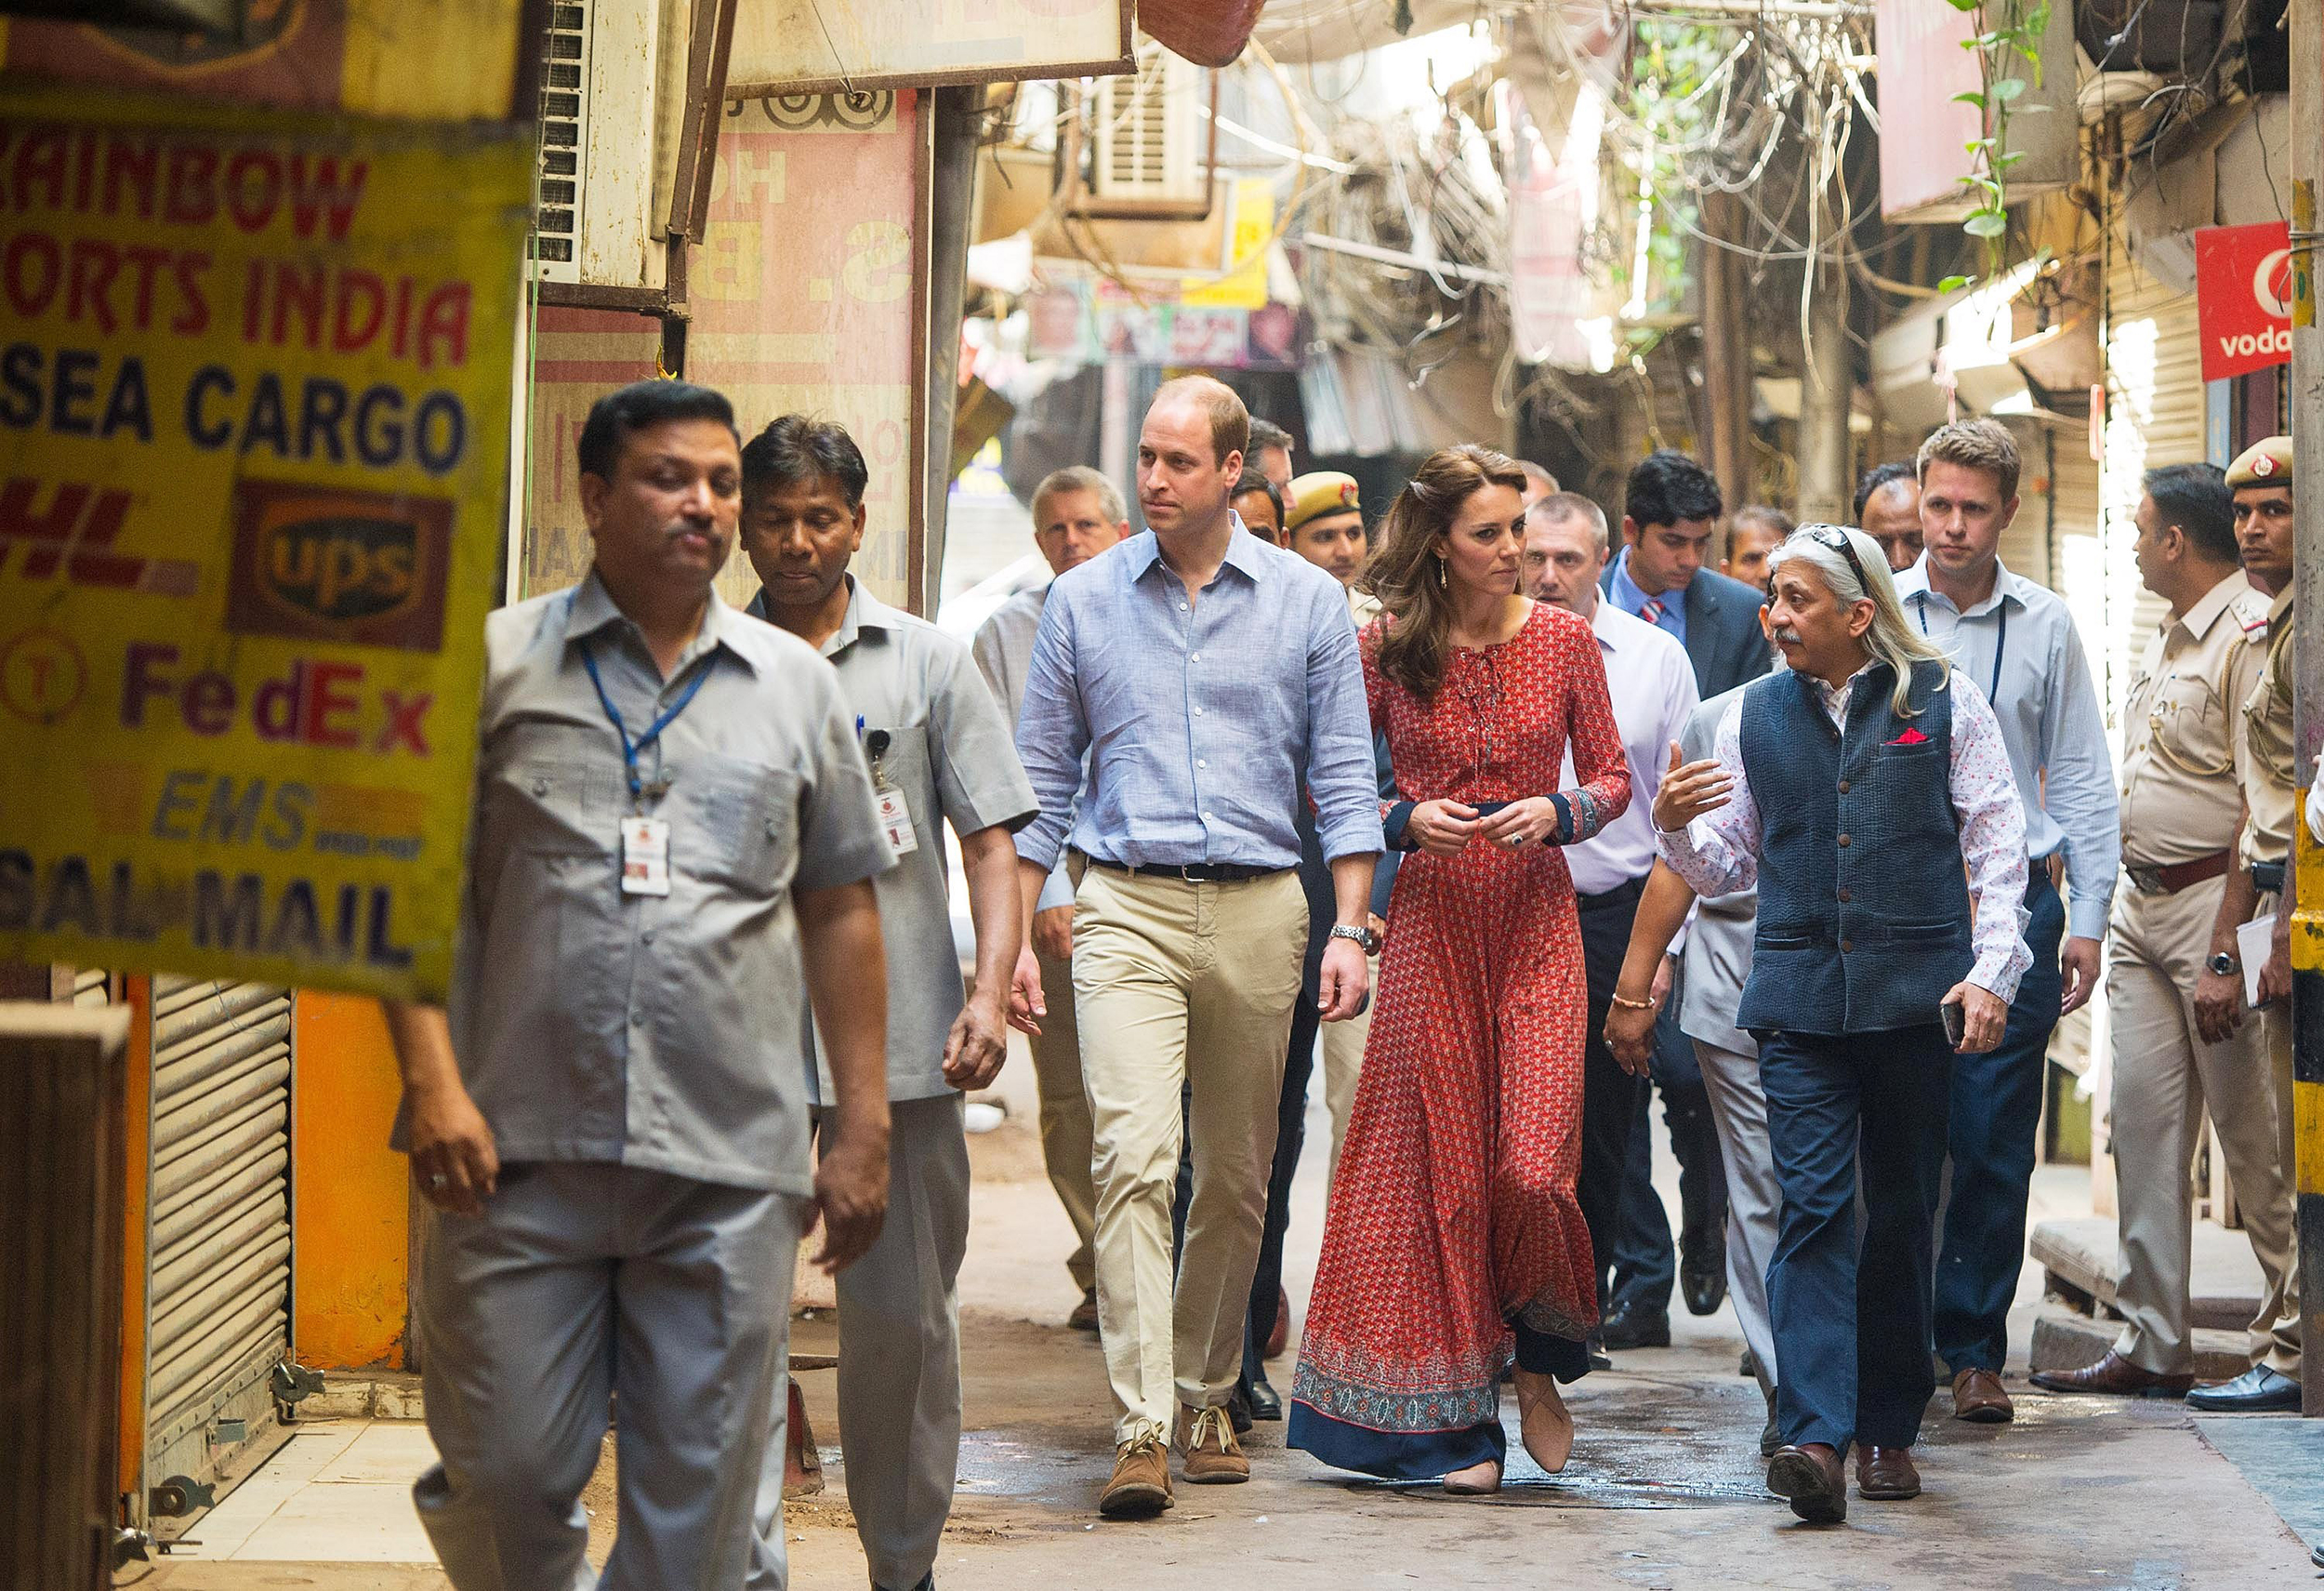 Catherine, Duchess of Cambridge and Prince William, Duke of Cambridge arrive for a visit to a contact centre run by the charity Salaam Baalak, which provides emergency help and long term support to homeless children at New Delhi railway station in New Dehli, India on April 12, 2016.